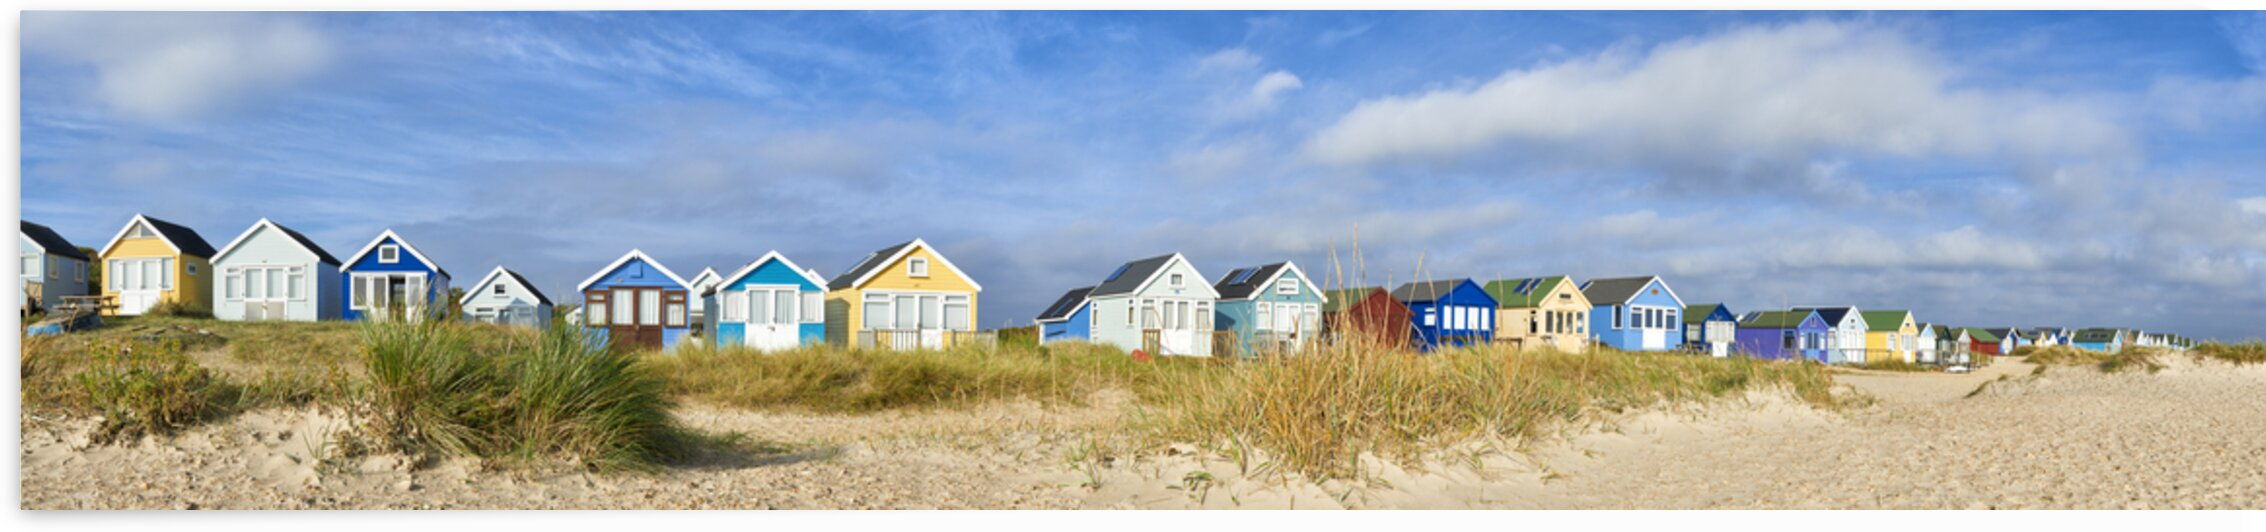 Beach Huts by Adrian Brockwell